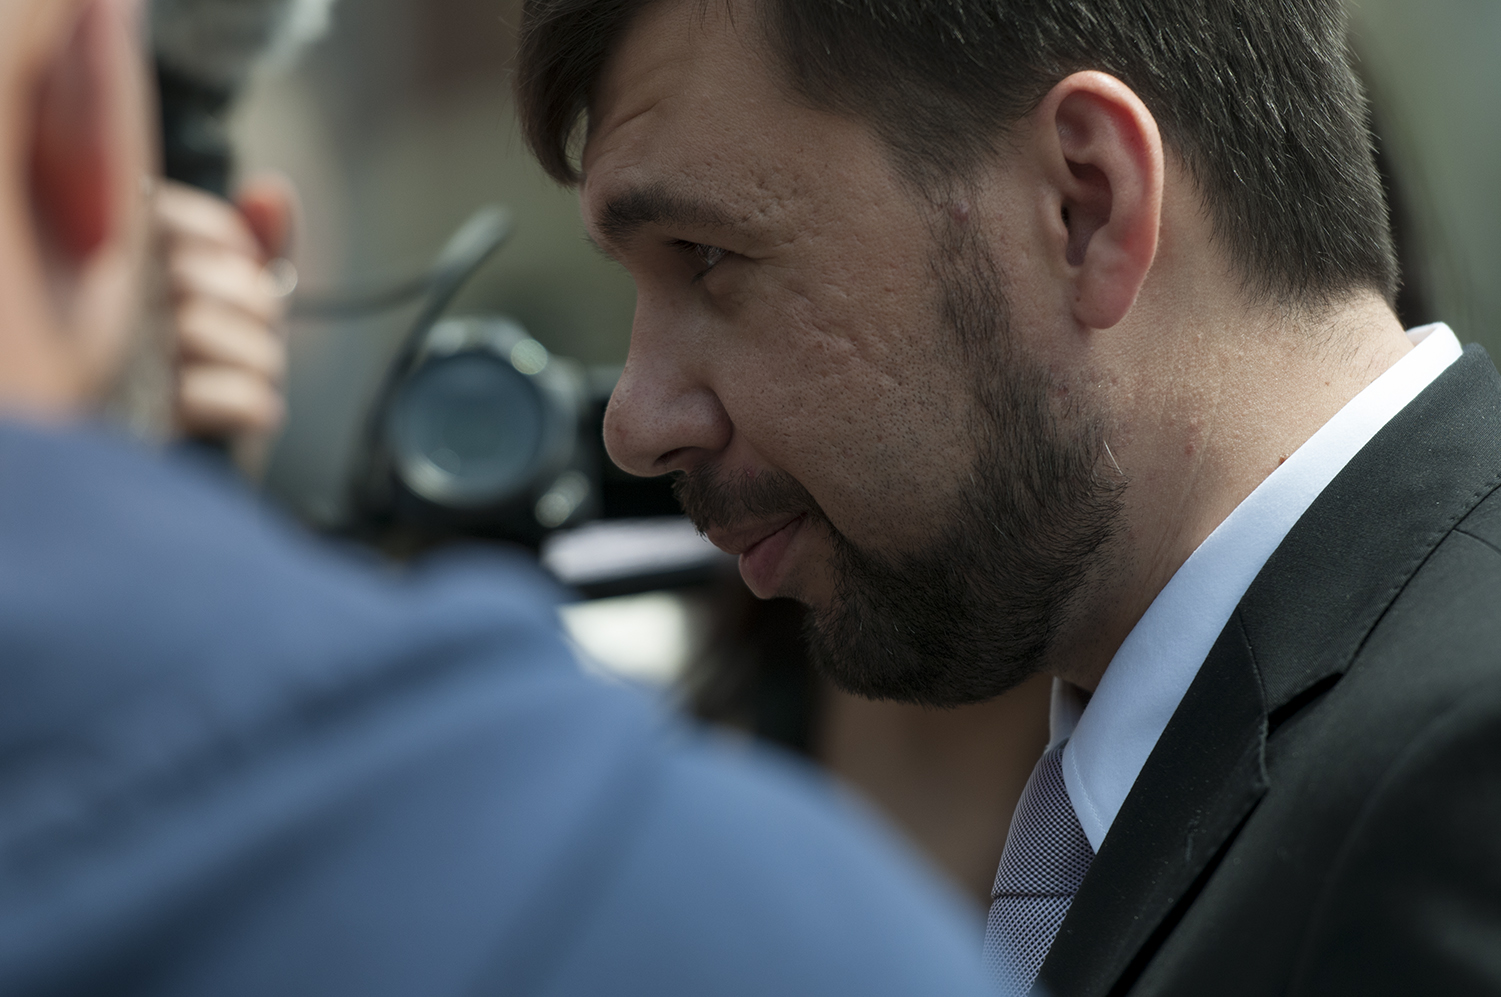 Denis Pushilin, chair man of the Donetsk People's Republic, giving interviews to international medias